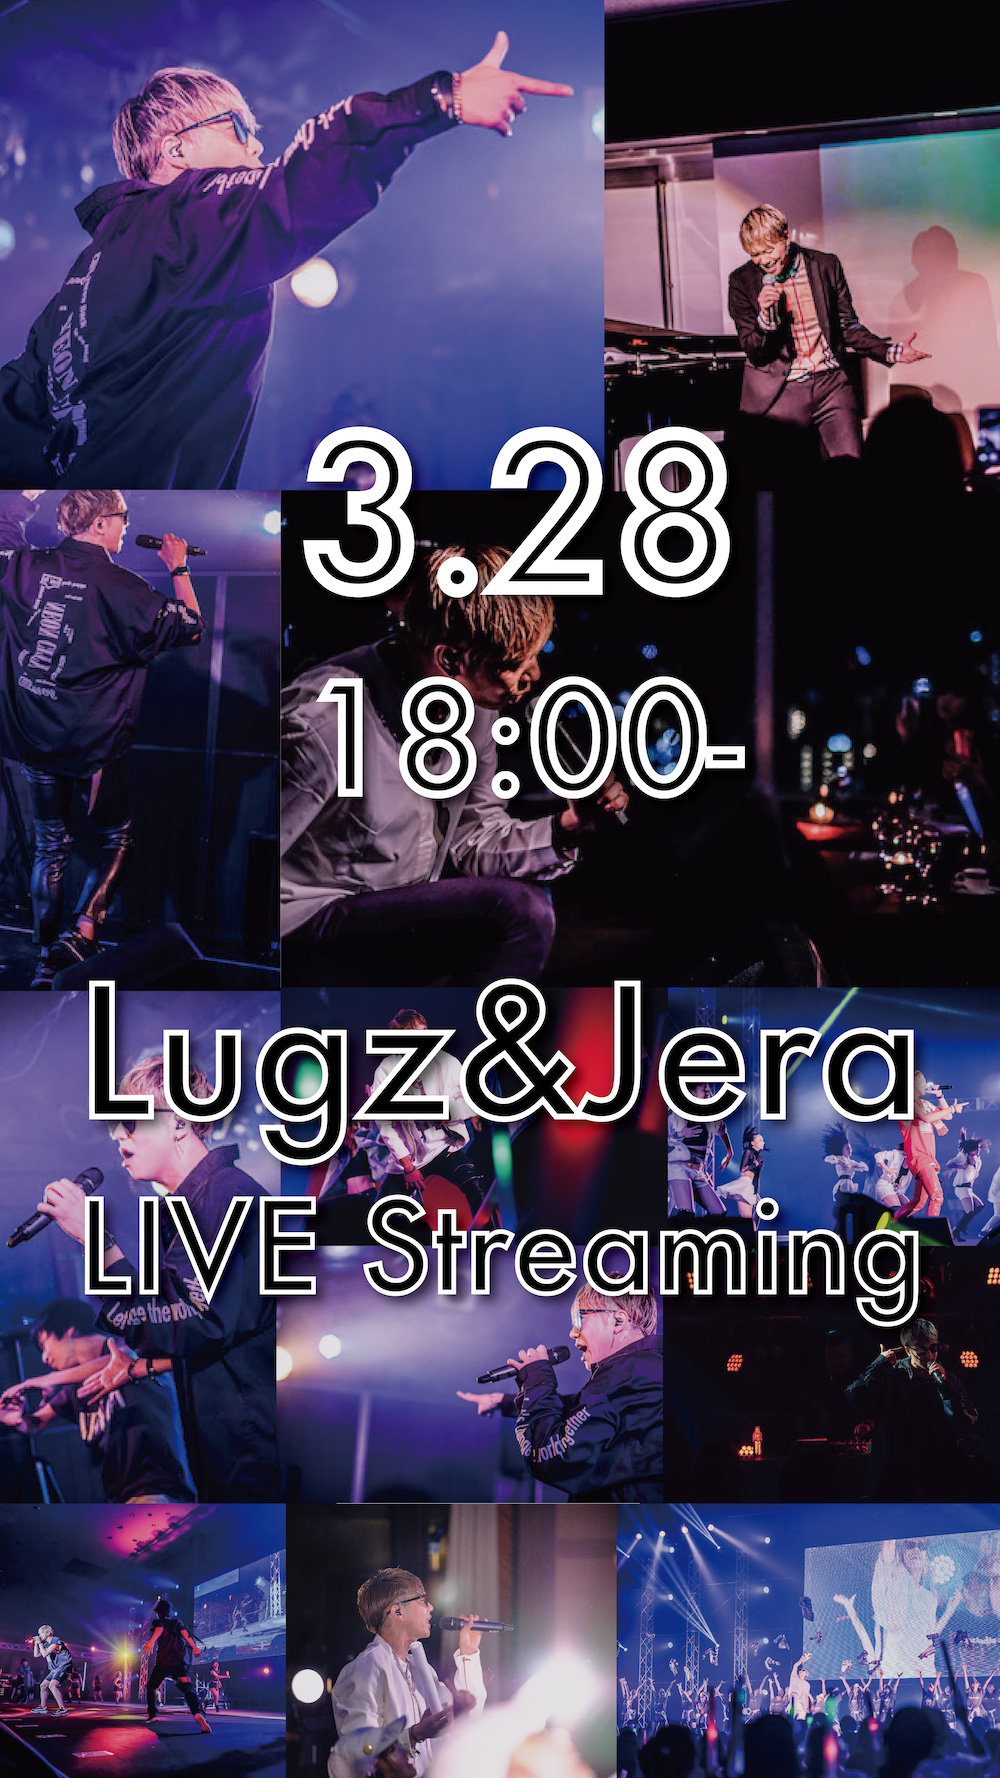 Lugz&Jera Regular LIVE in STUDIO LUGZ 〜Pre LIVE Streaming〜